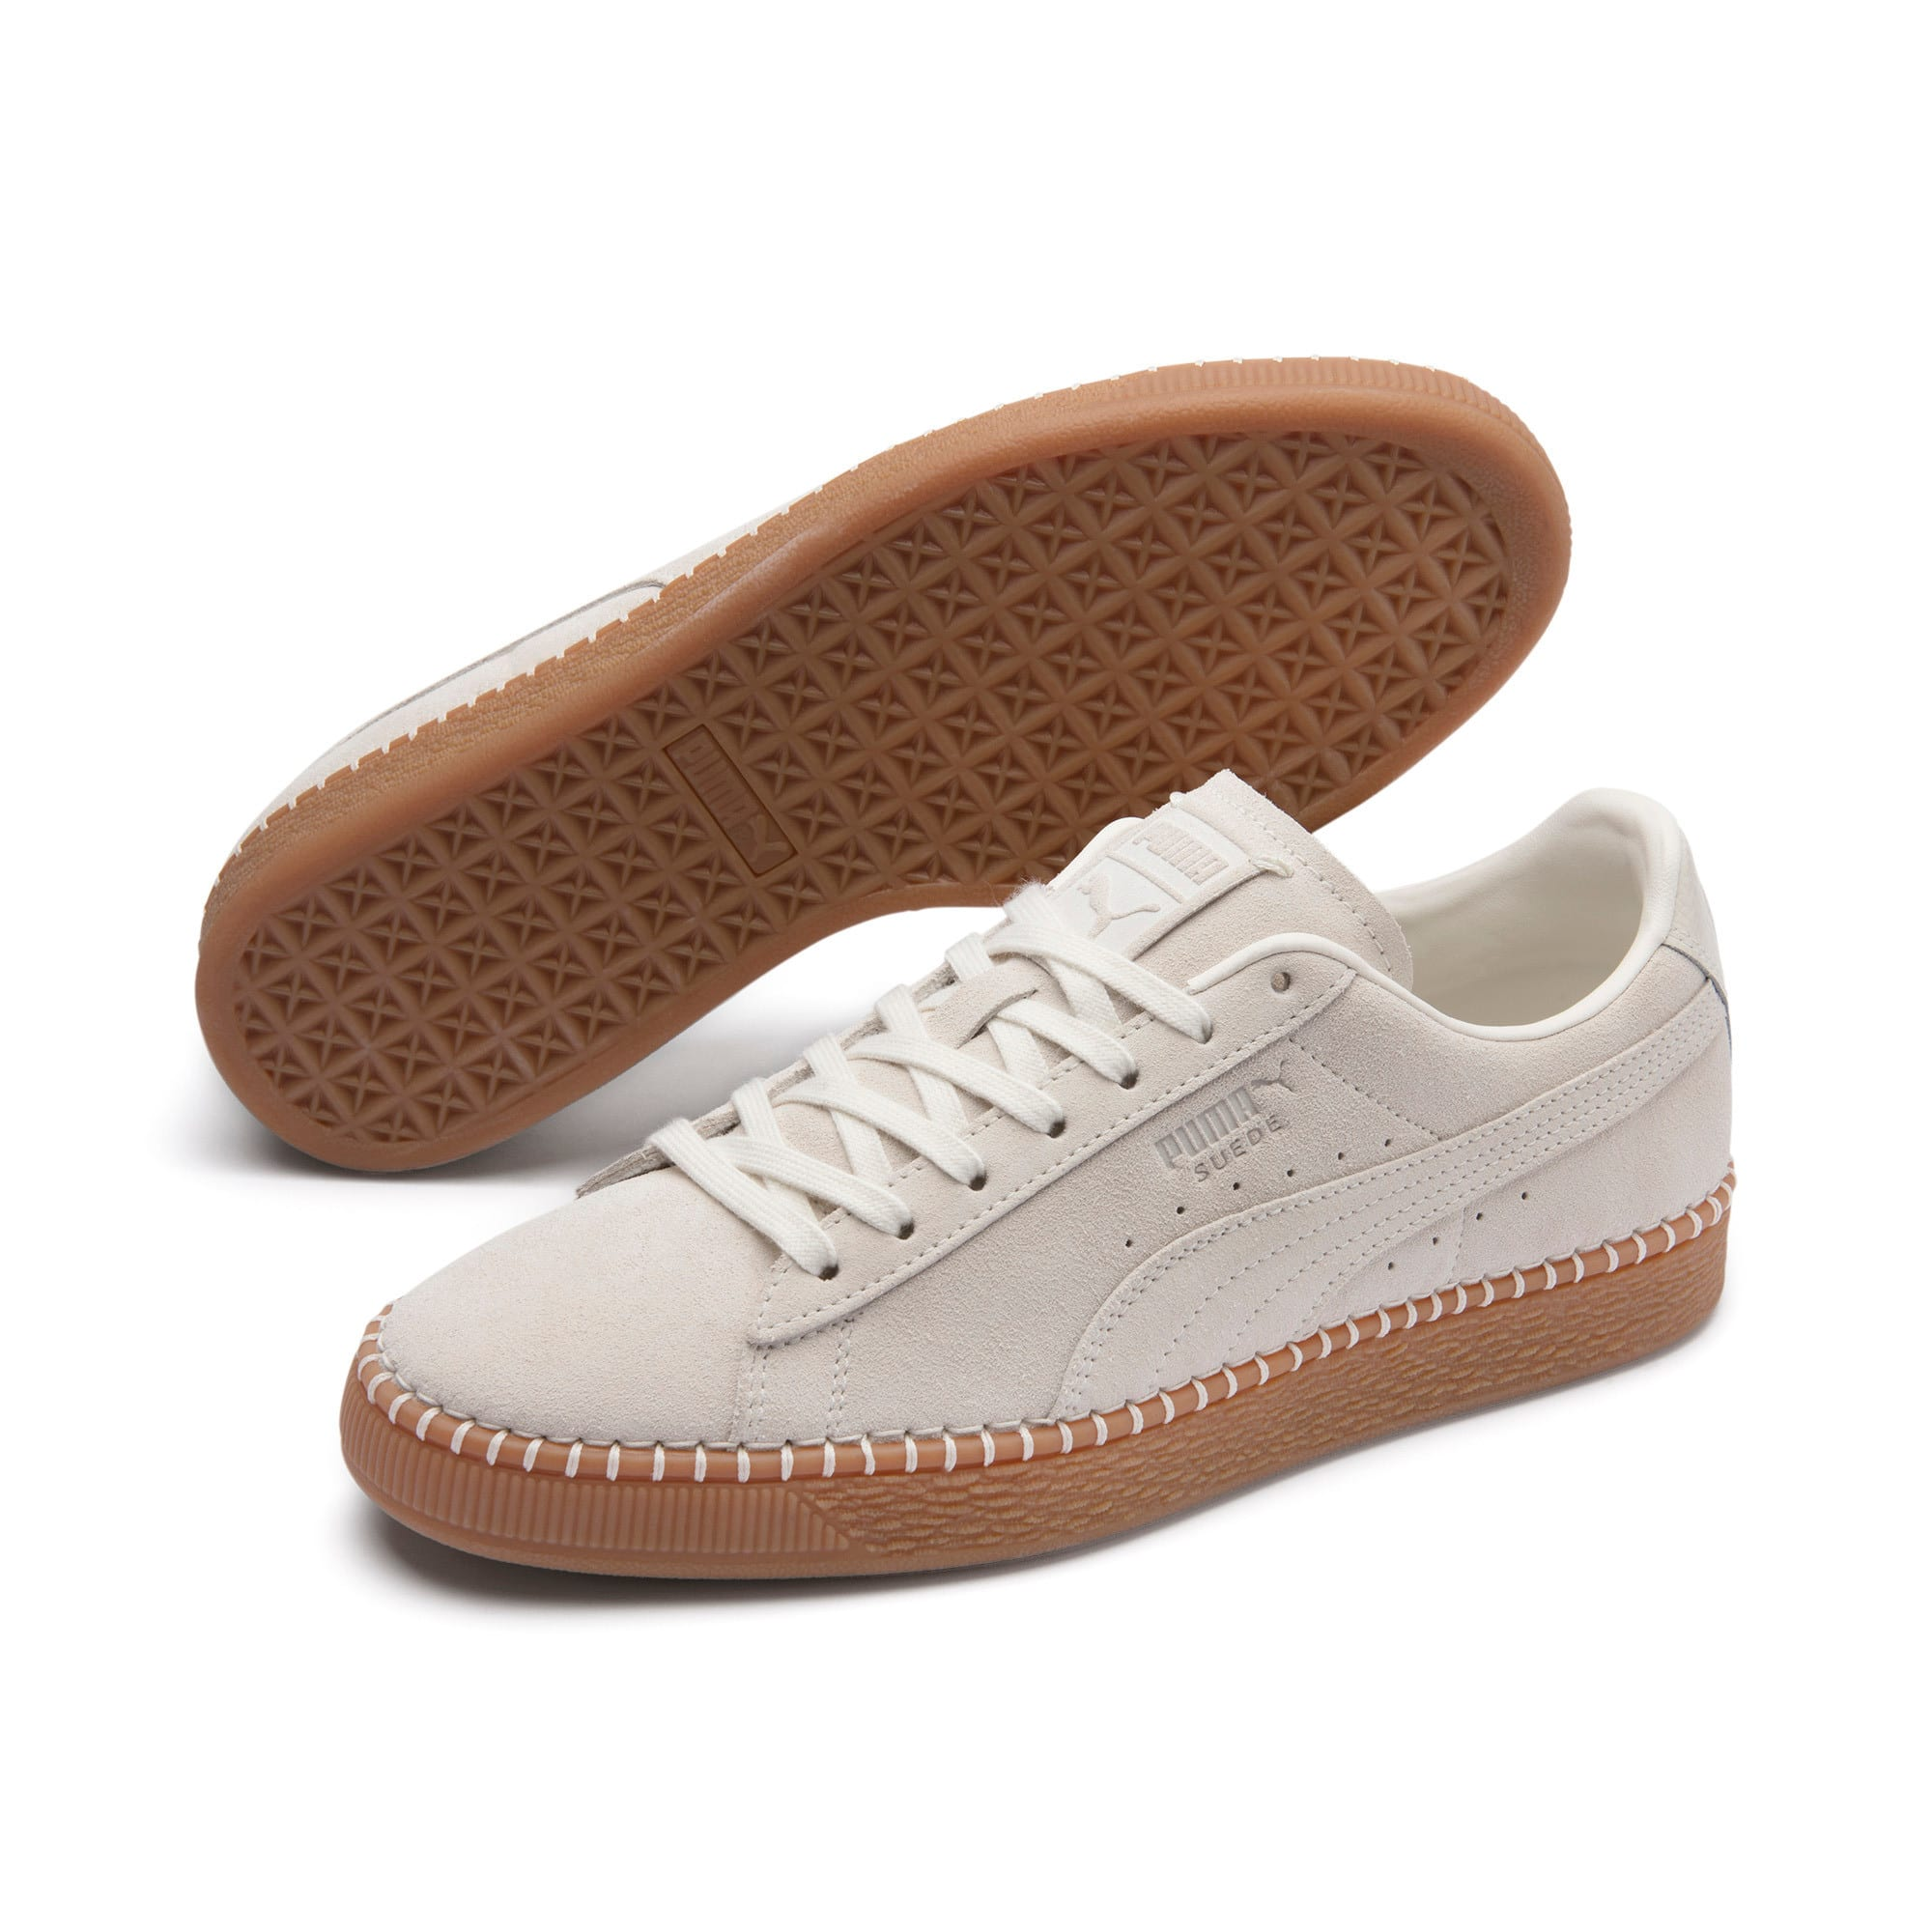 Thumbnail 3 of Suede Classic Blanket Stitch Trainers, Whisper White-Gum, medium-IND